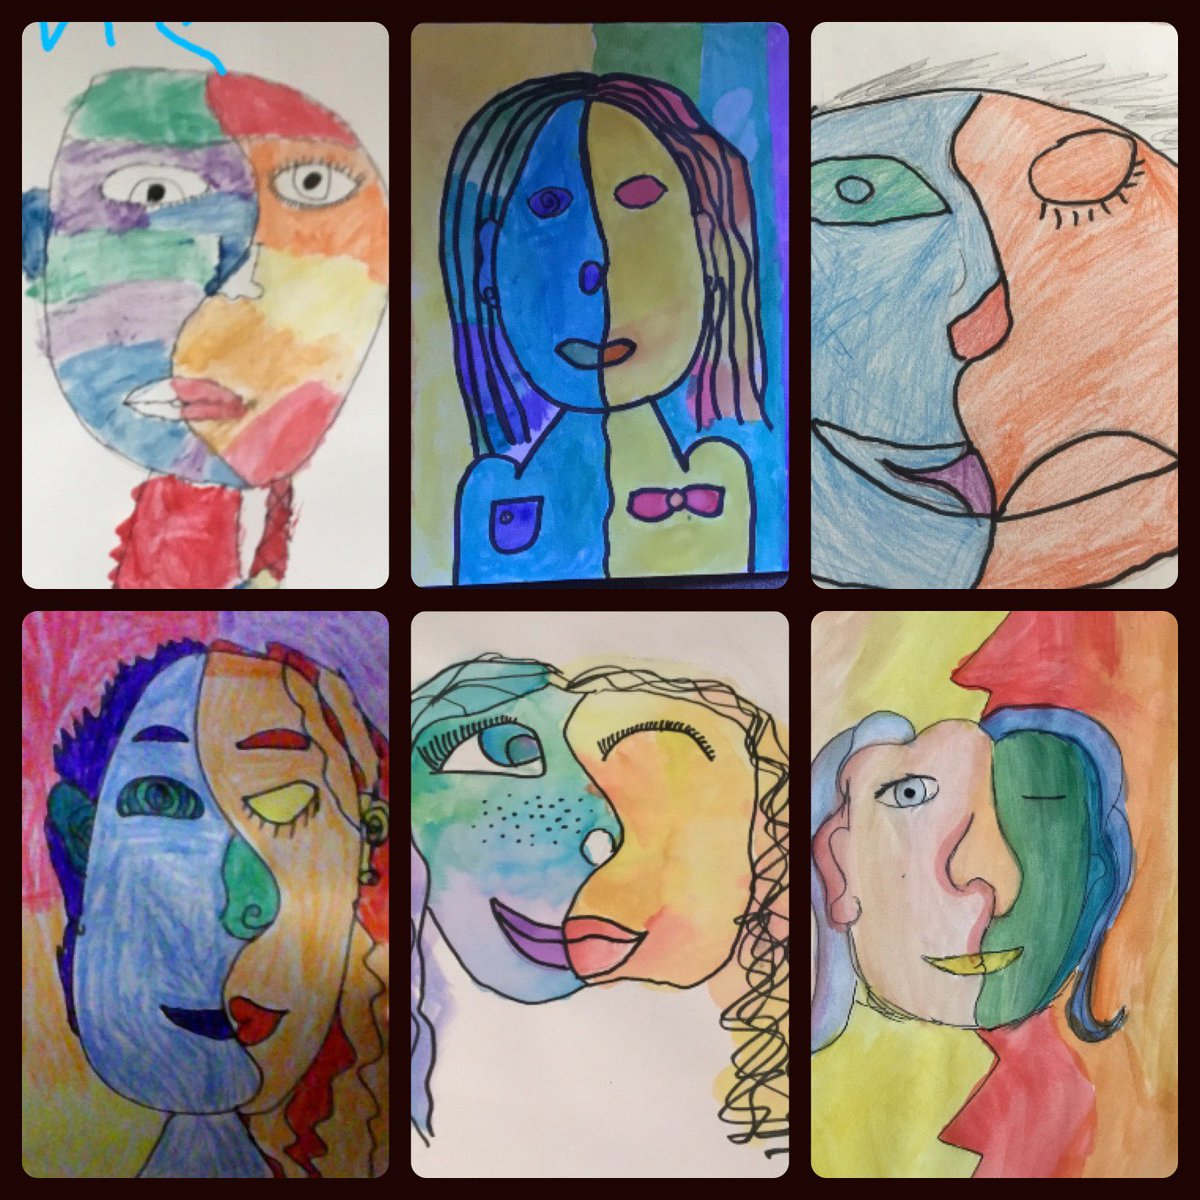 So proud of 5th grade artists making self-portraits inspired by Picasso while demonstrating mastery of warm/cool colors. <a target='_blank' href='http://twitter.com/APSArts'>@APSArts</a> <a target='_blank' href='http://twitter.com/APS_ATS'>@APS_ATS</a> <a target='_blank' href='http://twitter.com/perezartlove'>@perezartlove</a> <a target='_blank' href='https://t.co/UDGmgbsxka'>https://t.co/UDGmgbsxka</a>